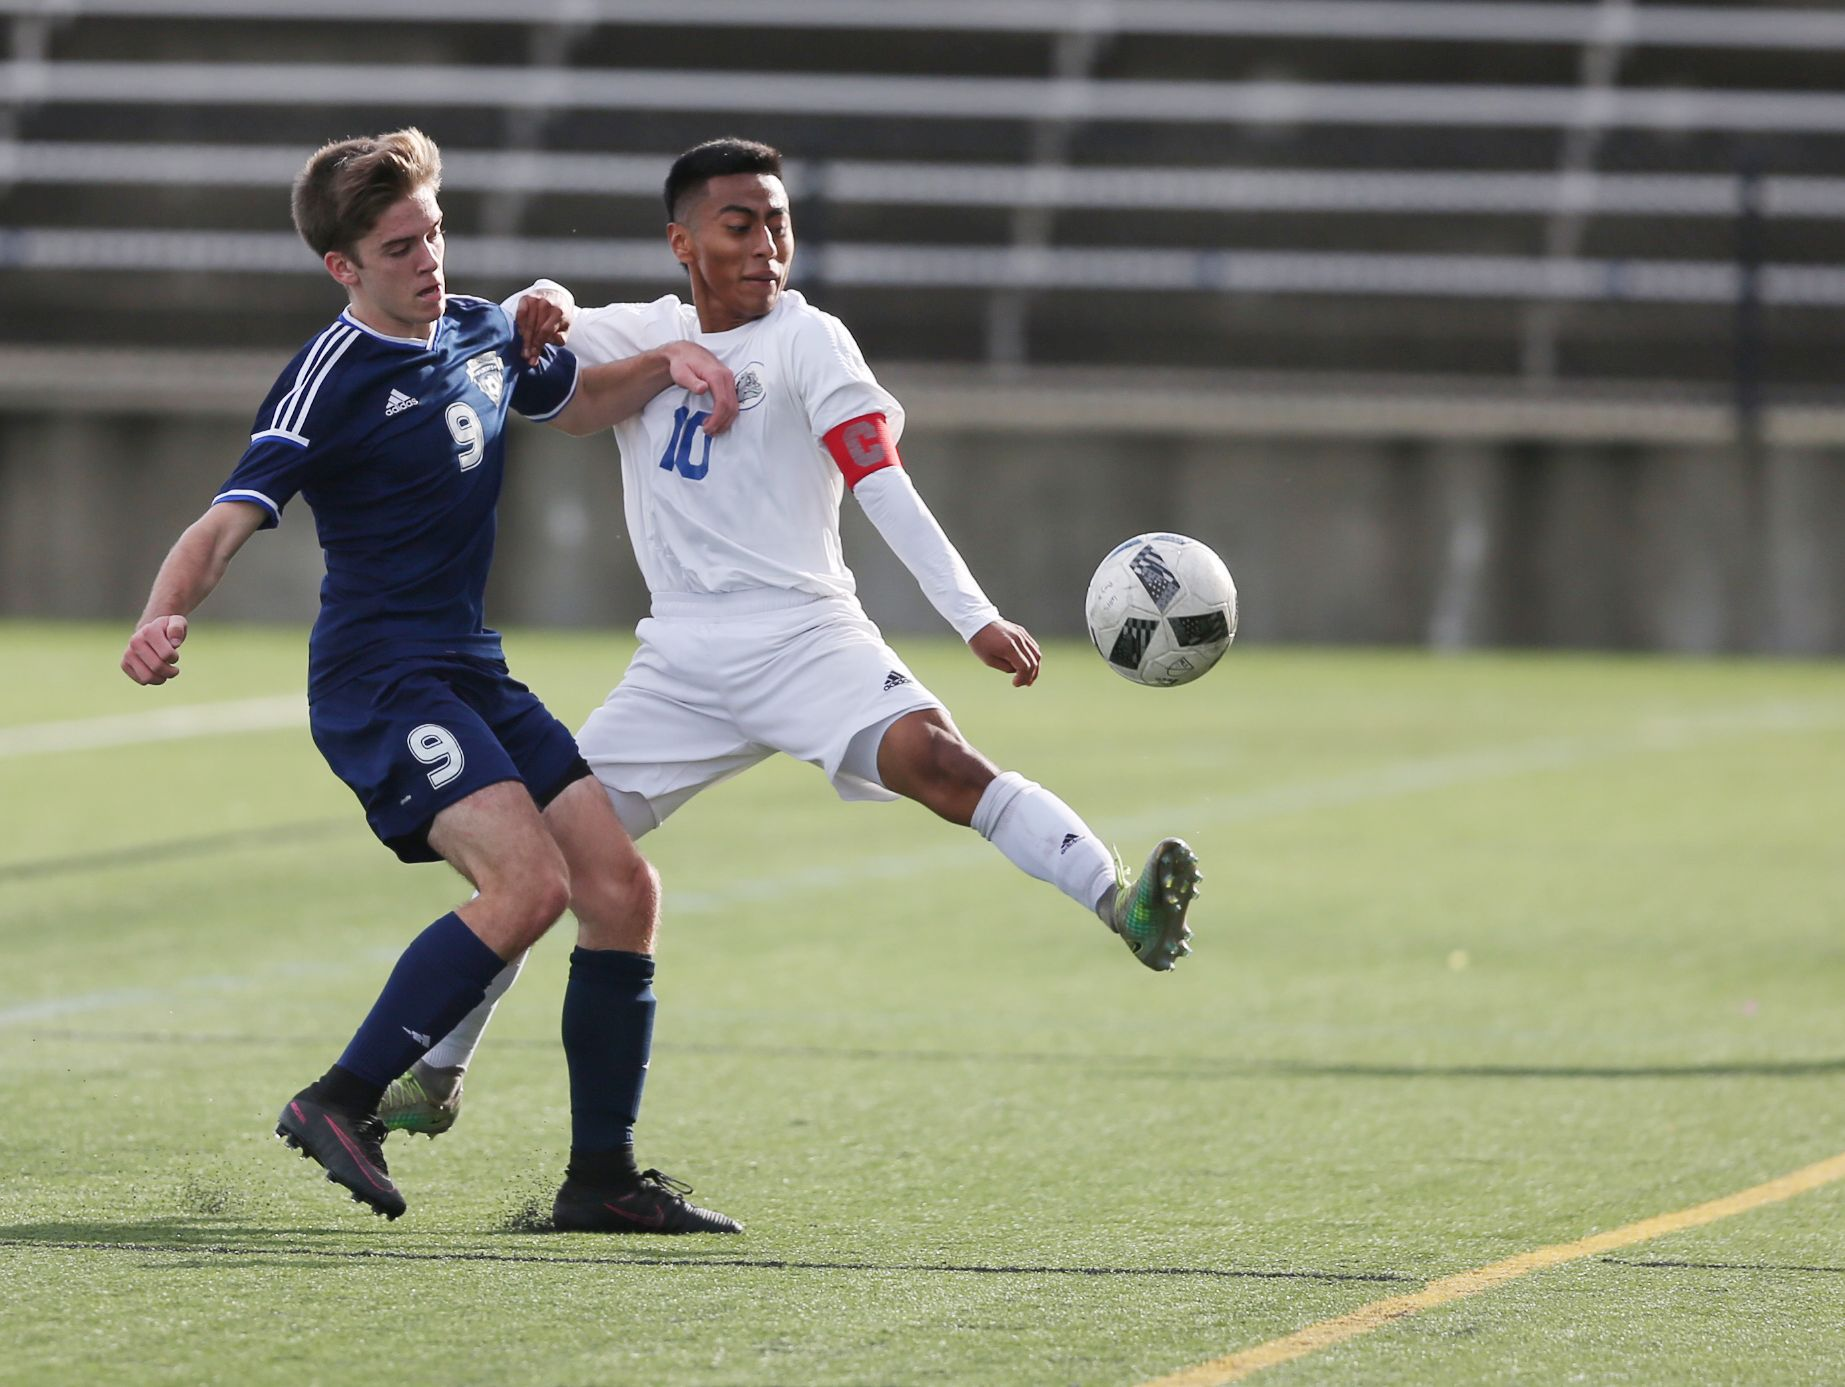 Woodburn's Kevin Vasquez and Wilsonville's Riley King battle for the ball as the Bulldogs defeat Wilsonville 1-0 to win OSAA Class 5A State Championship on Saturday, Nov. 12, 2016, at Hillsboro Stadium.